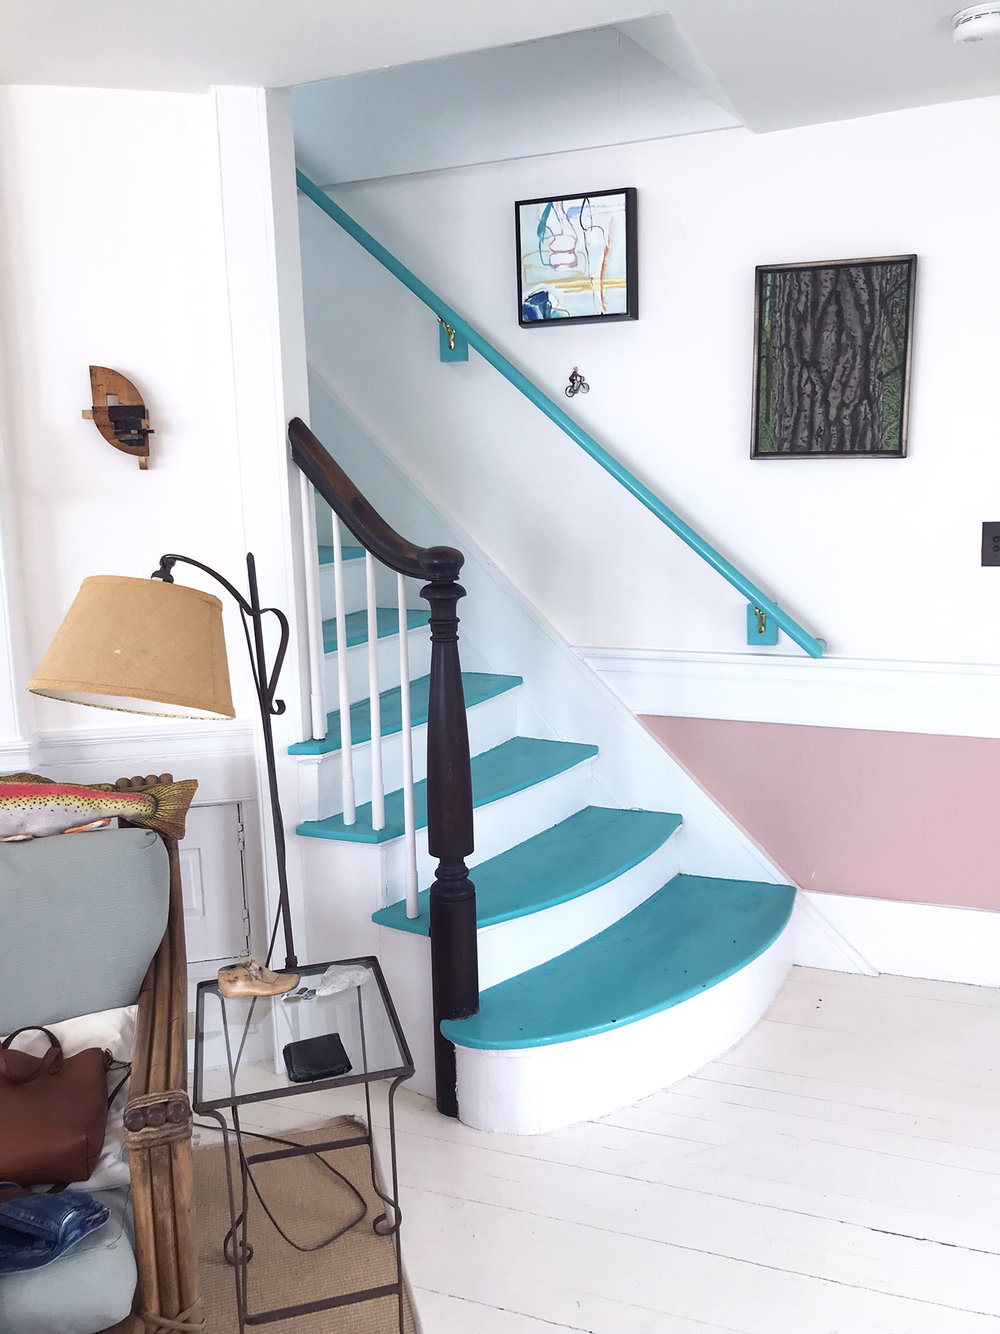 Teal stairs in a house located in Provincetown, MA.